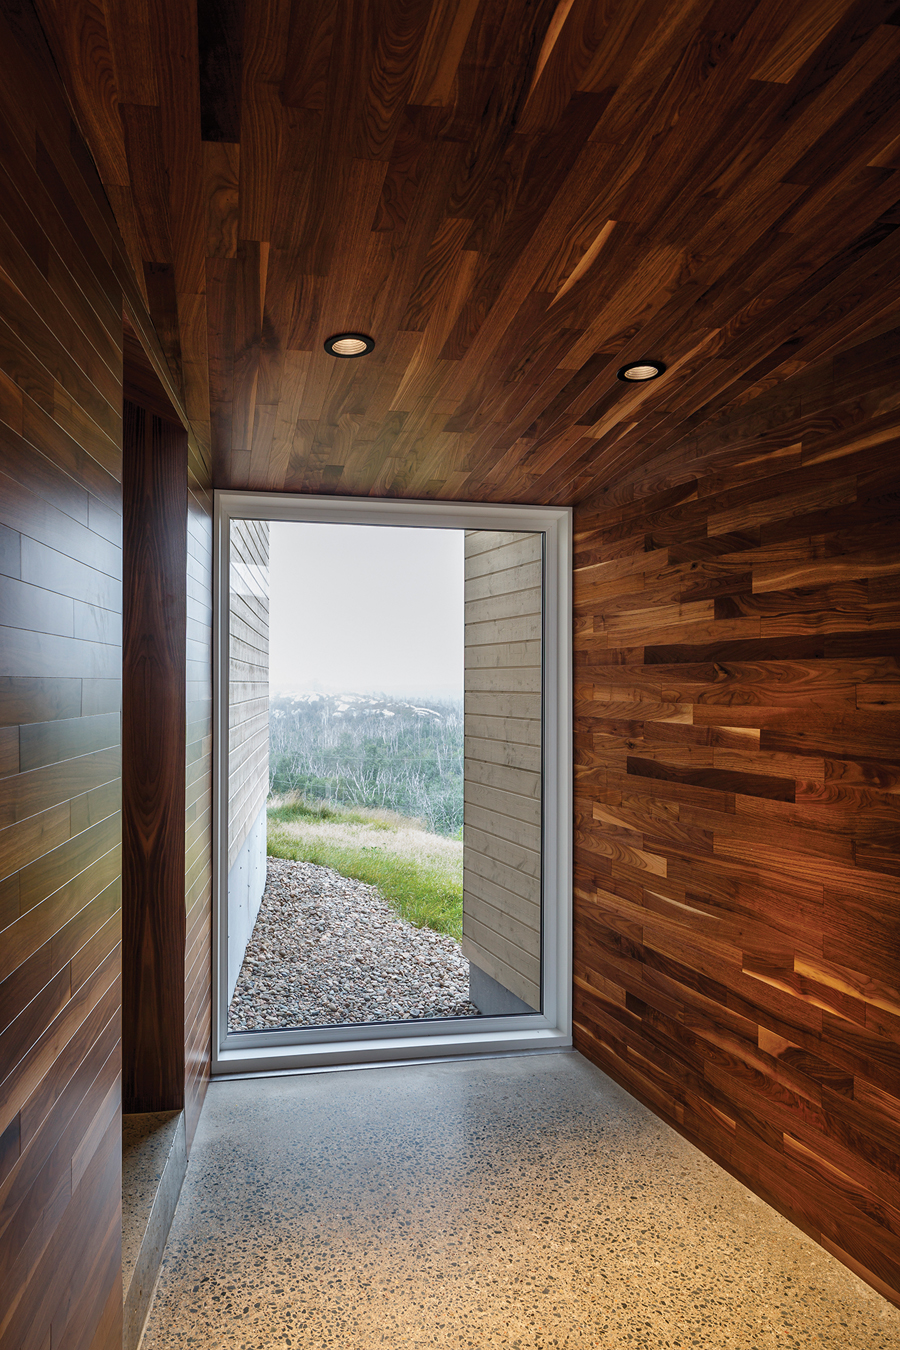 The entrance foyer is capped by a floor-to-ceiling window that gives a glimpse of the landscape views visible from the house's living spaces.